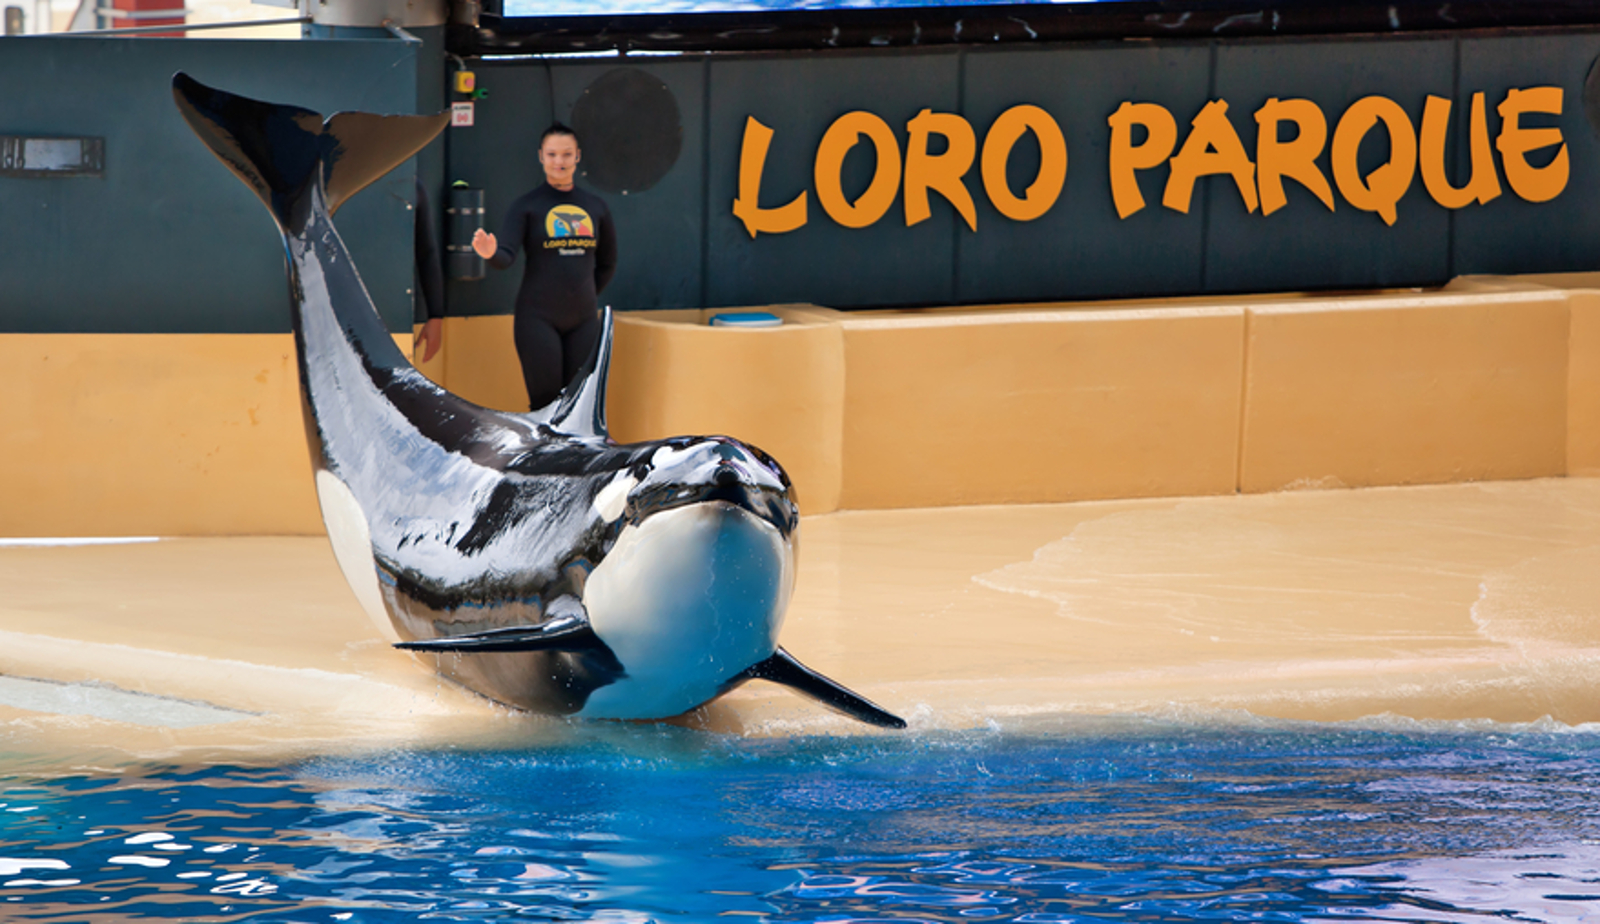 Fractured Teeth and Broken Minds – Assessing Captive Orca Welfare